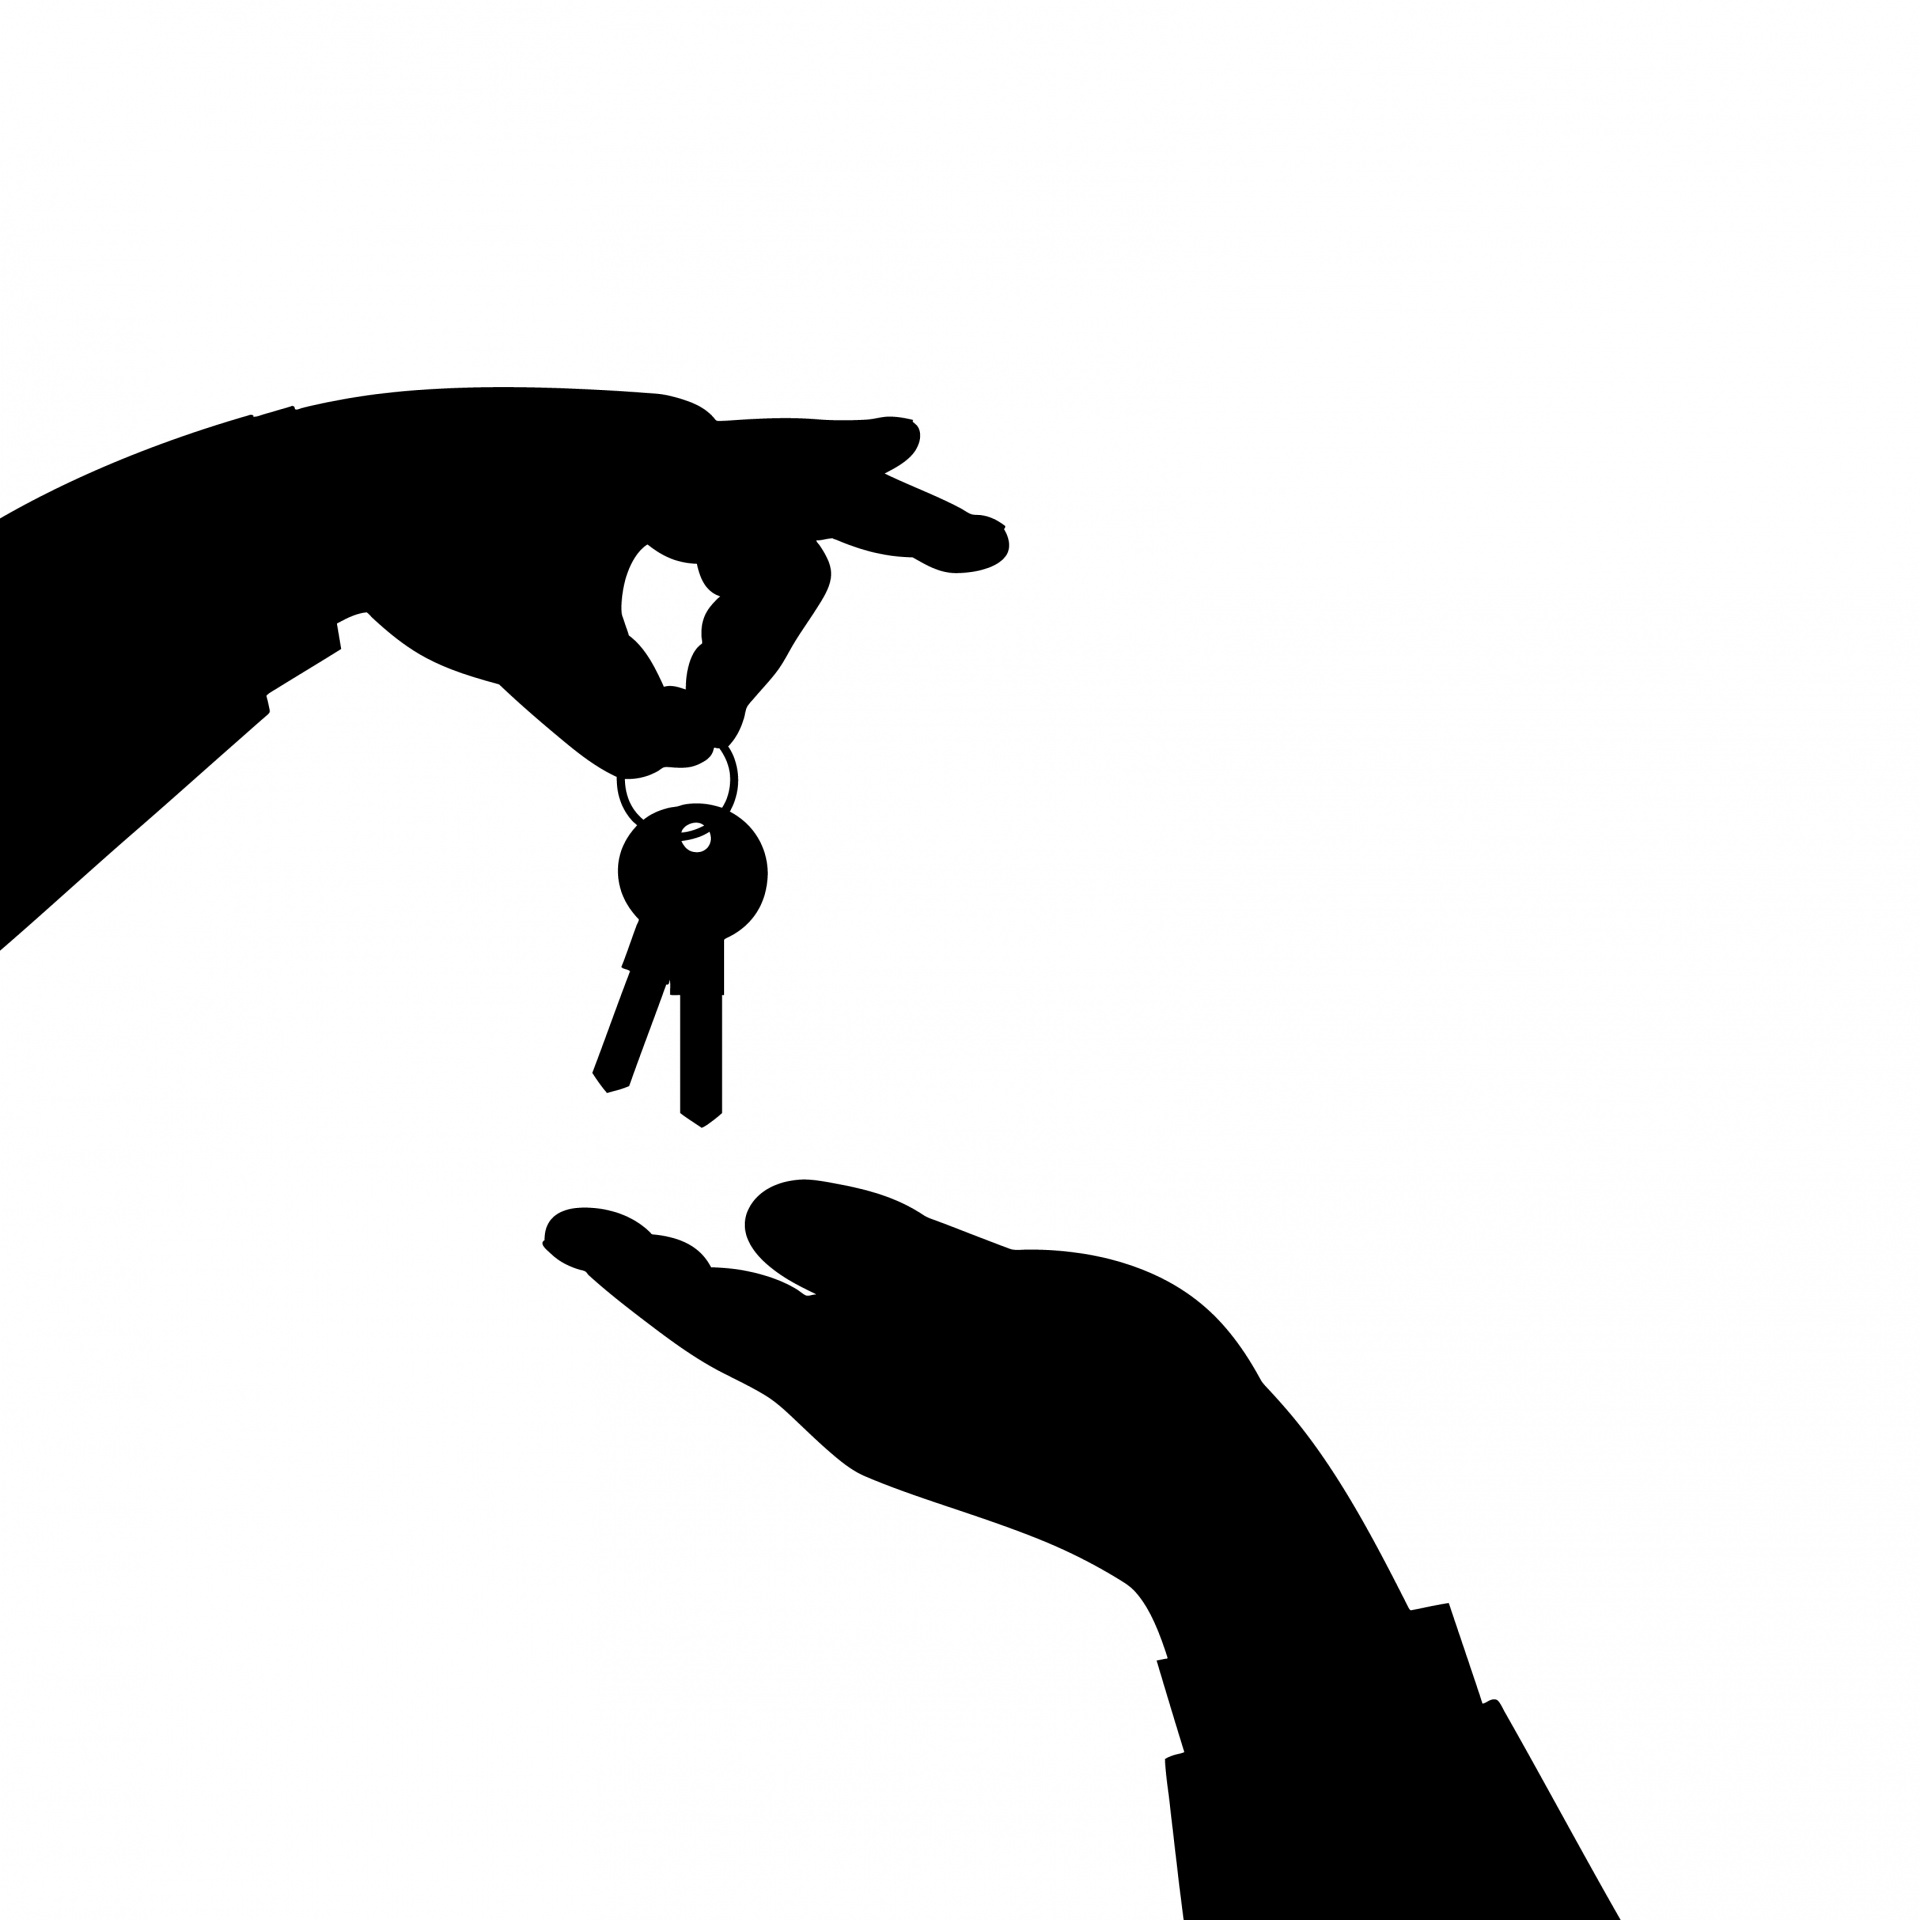 1920x1920 Keys In Hand Silhouette Free Stock Photo